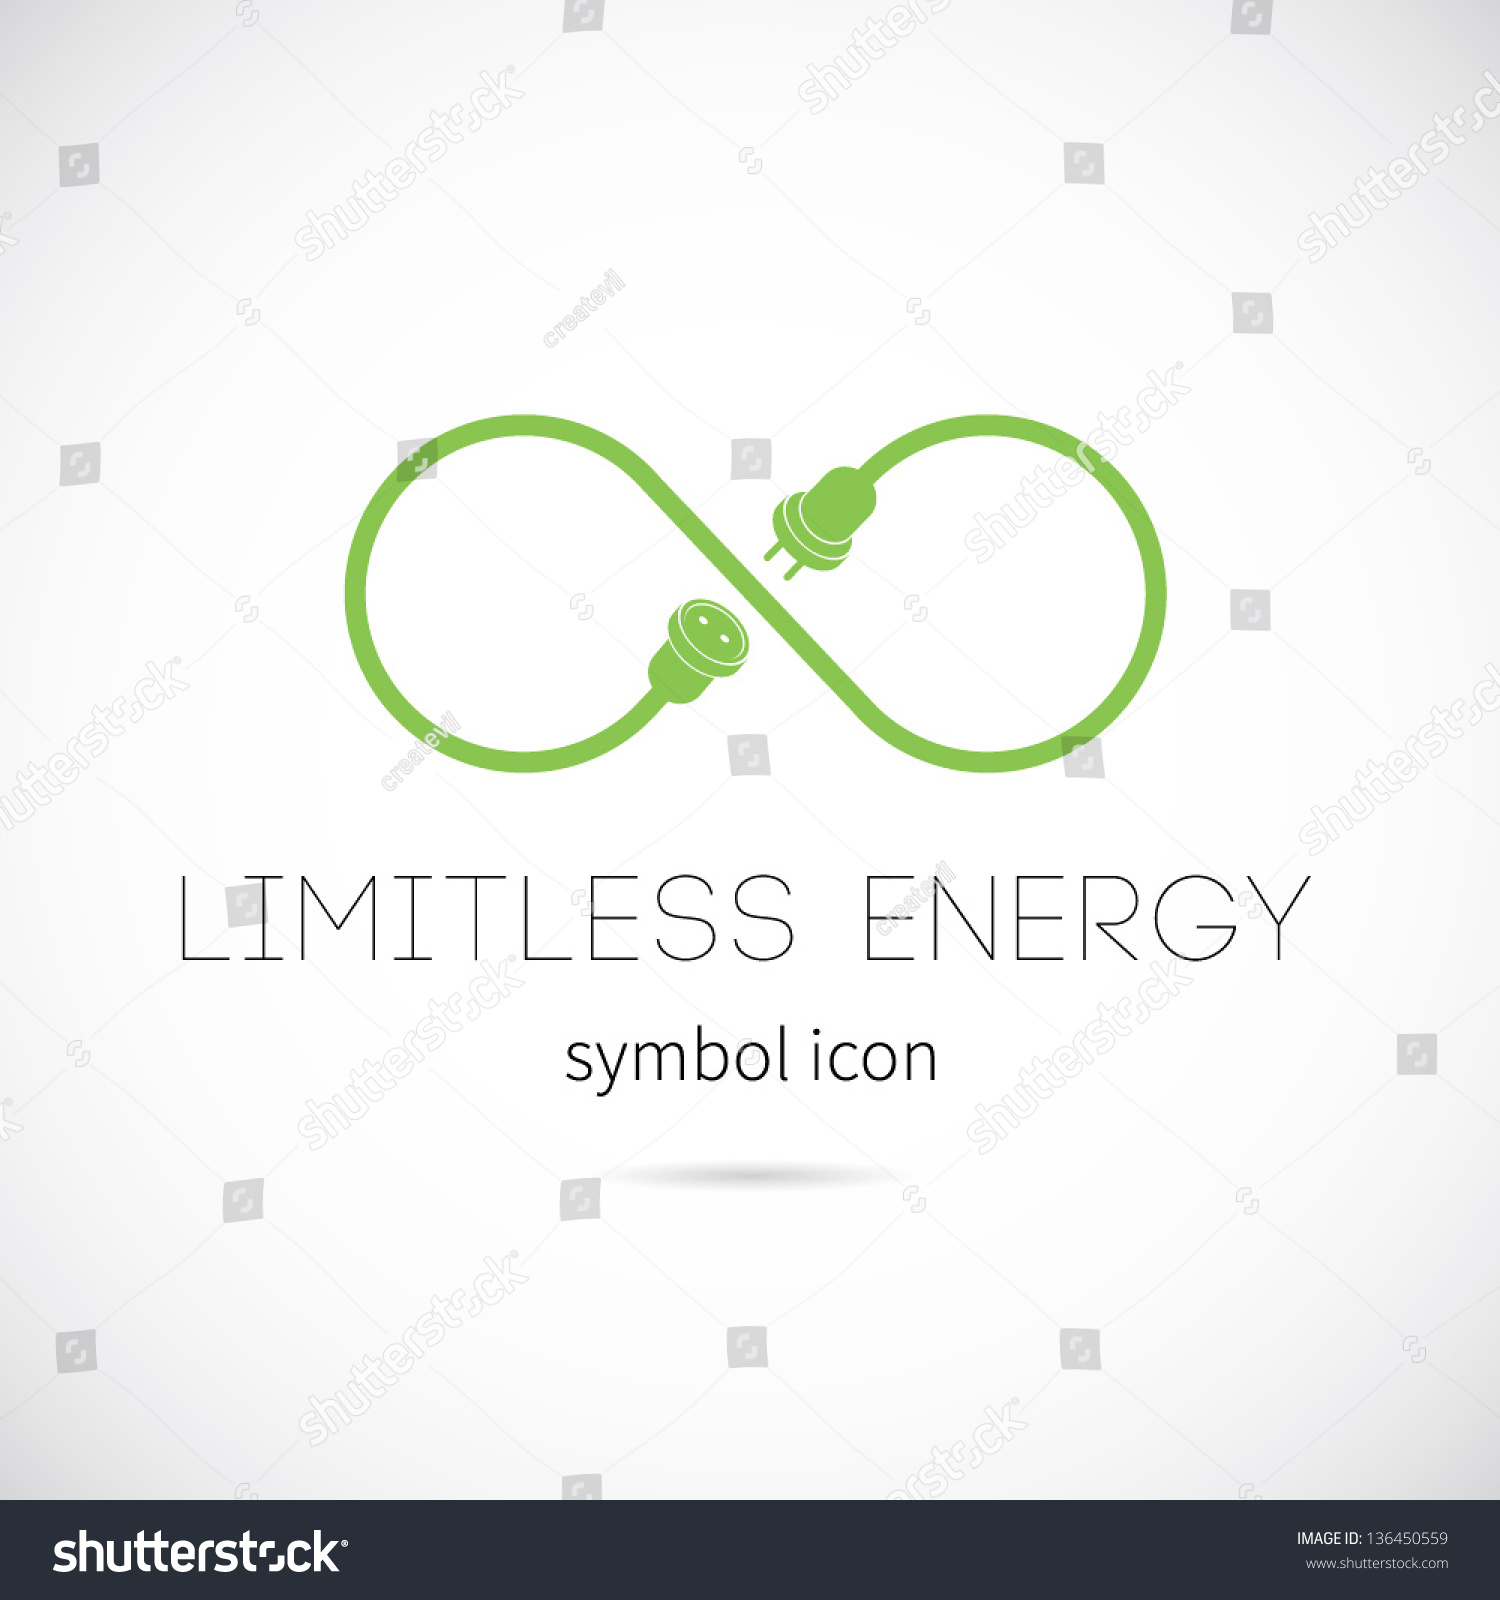 Limitless Energy Vector Symbol Icon Or Logo - 136450559 : Shutterstock